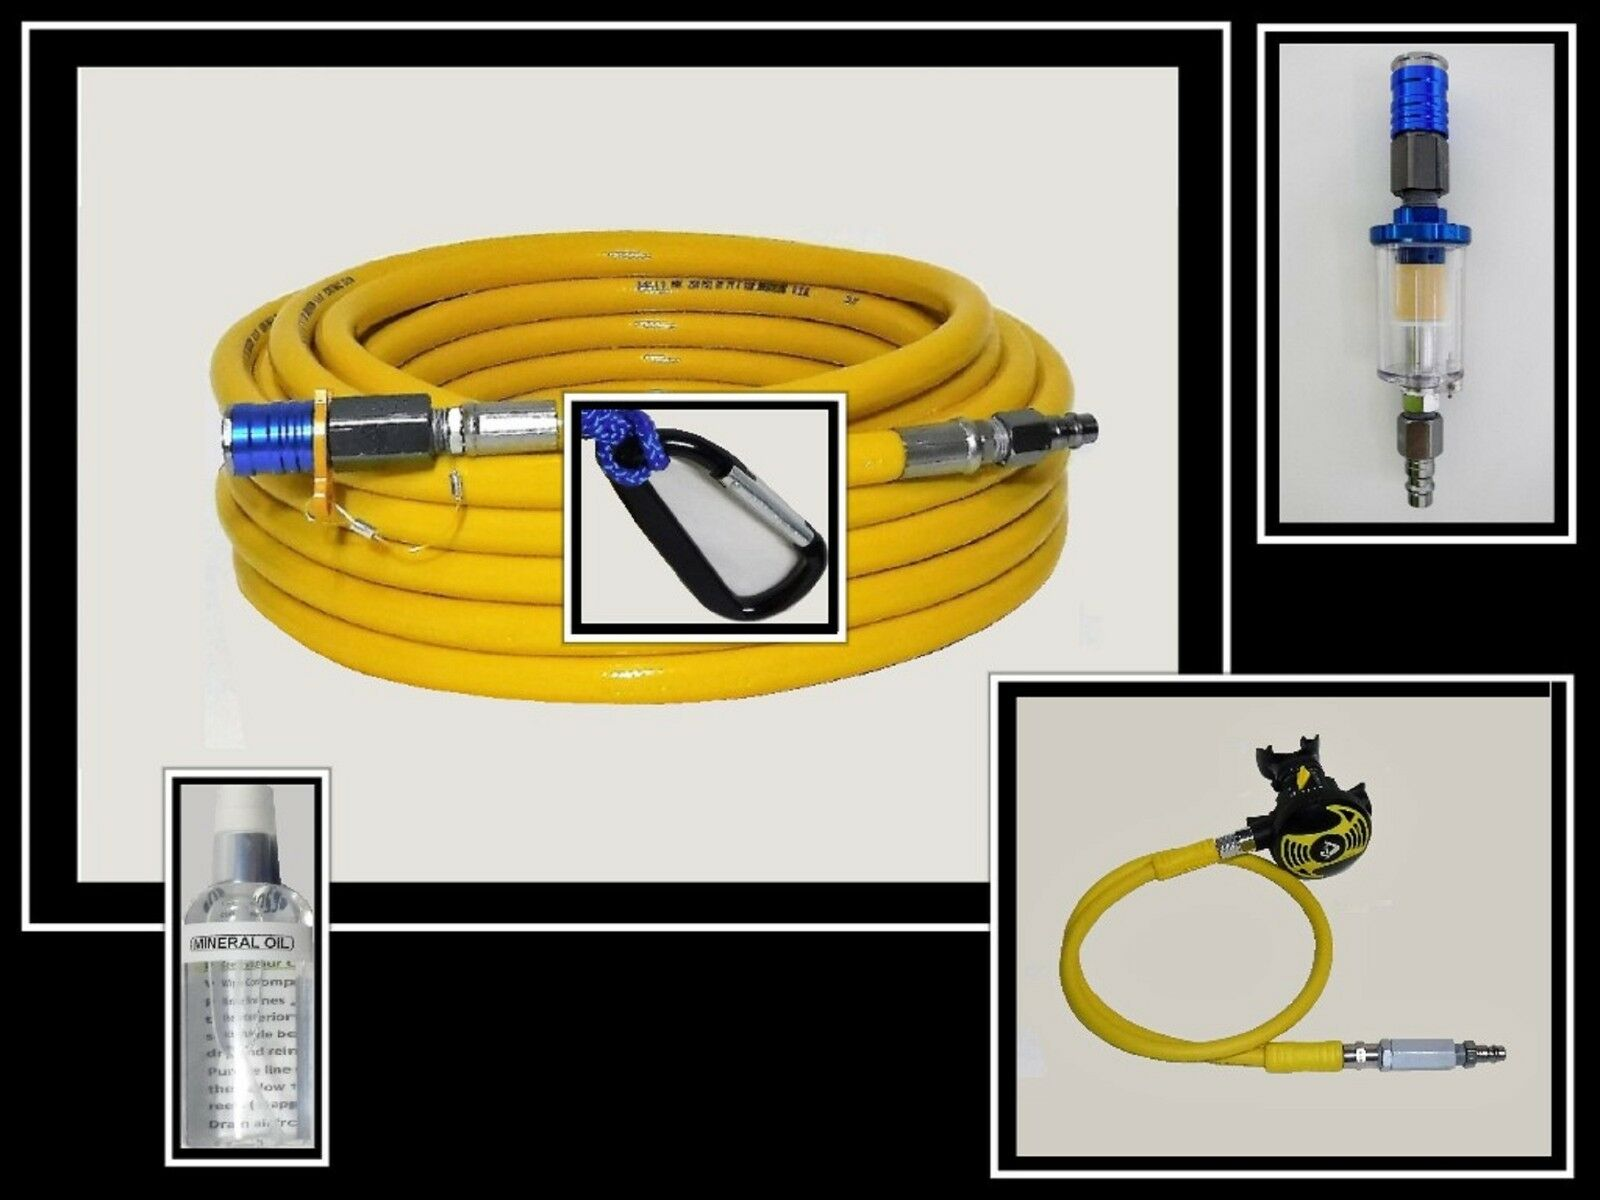 100' Universal Add-A-Diver Hookah kit w  filters and 2nd stage Cressi   LOBSTER